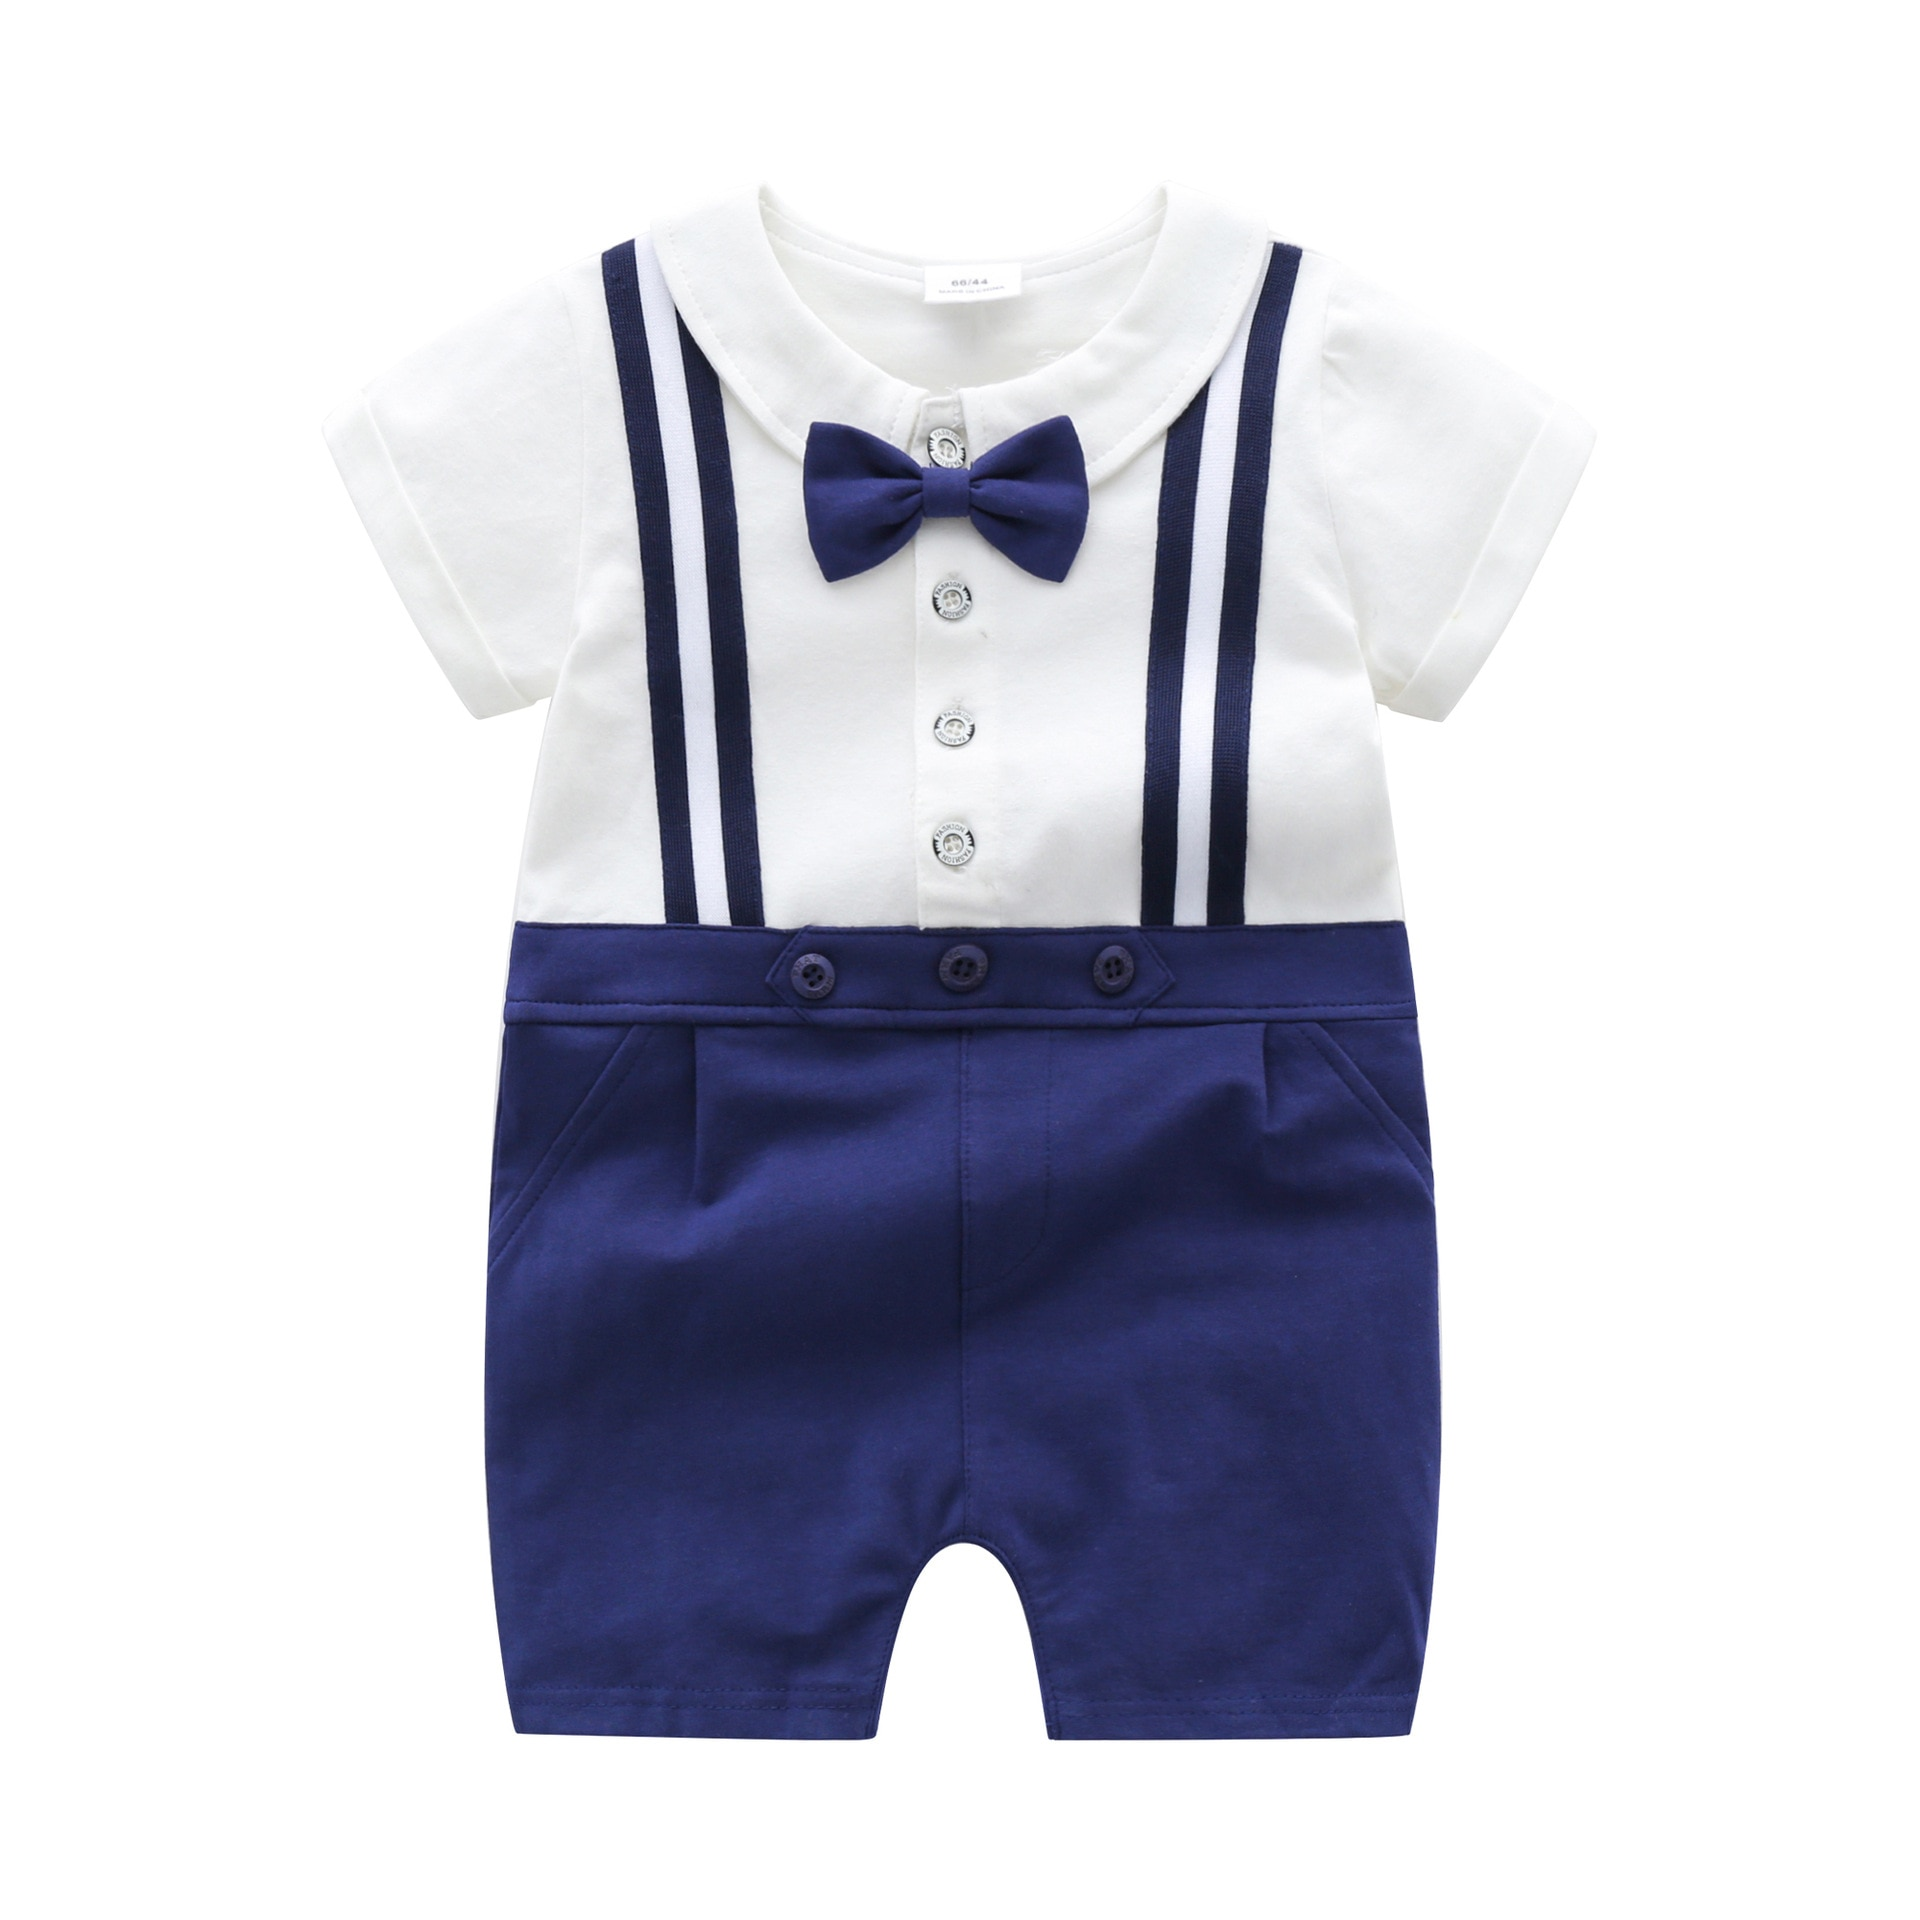 Yg brand children's clothing 2021 summer new baby boy's strap and tie one-piece clothes for going ou